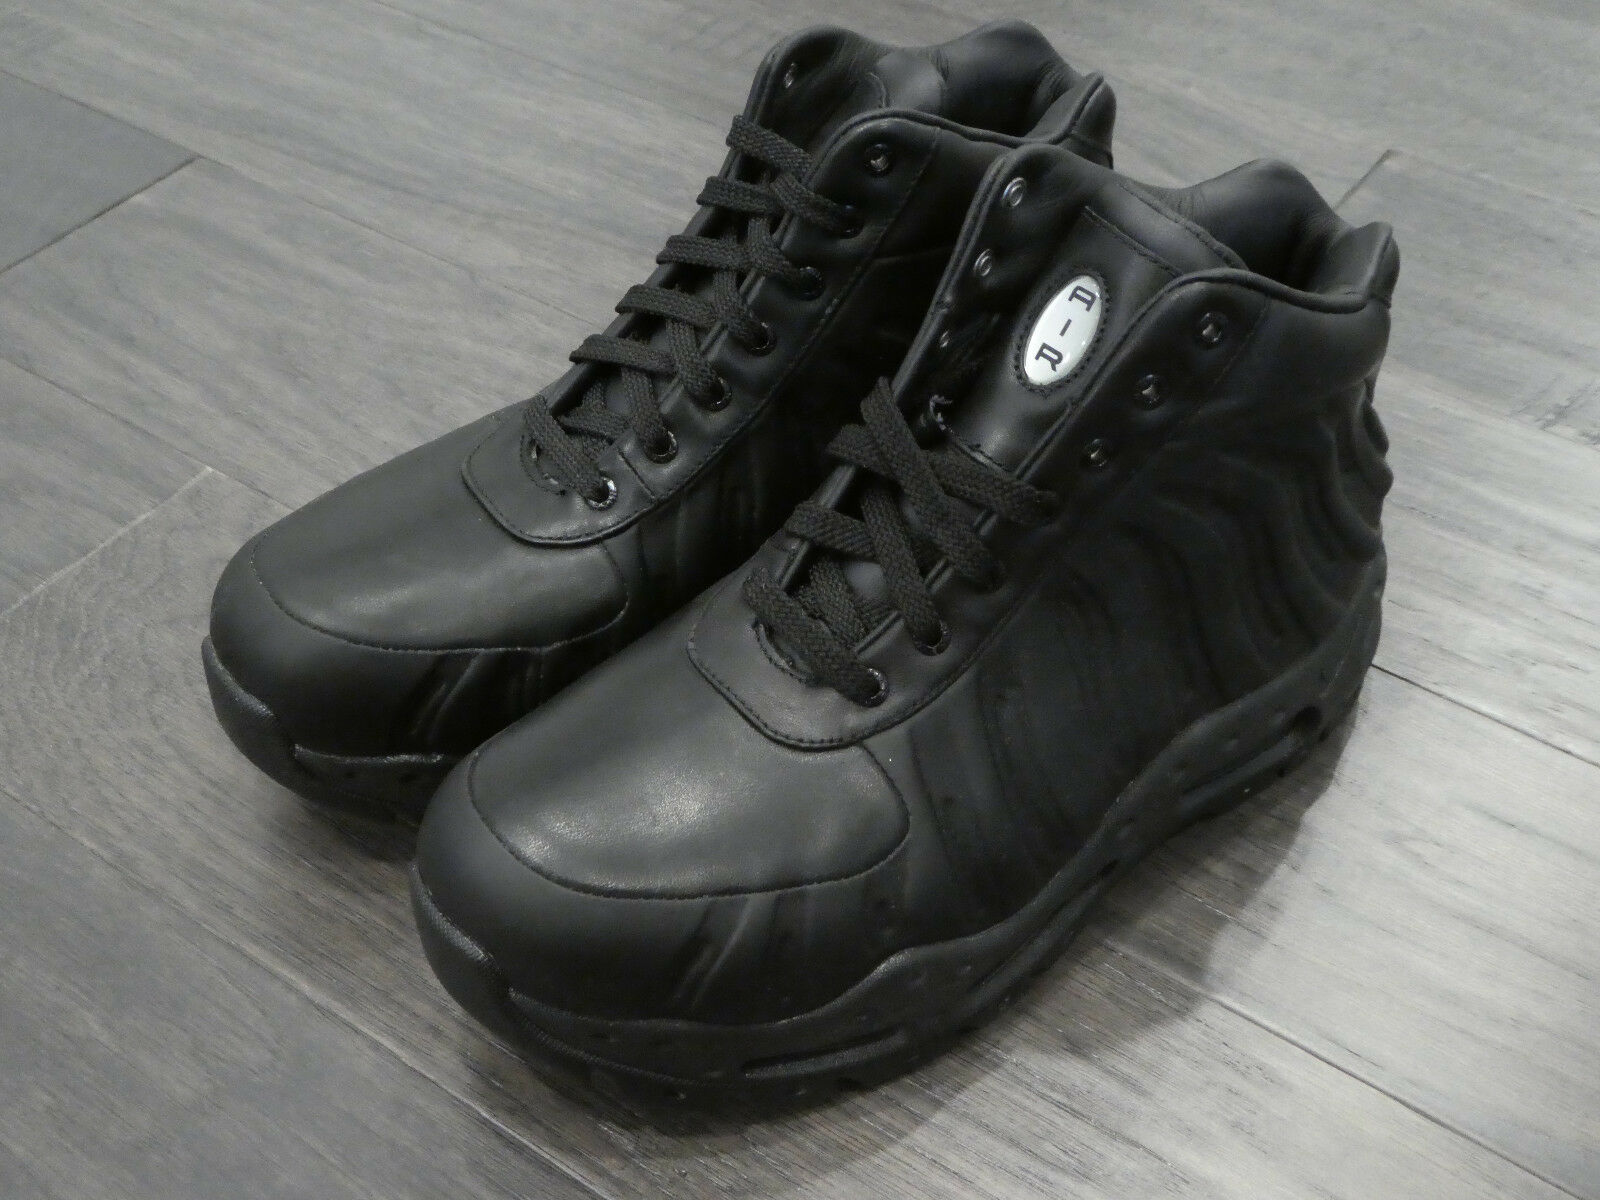 Nike Air Max Foamdome boots sneakers shoes new black 843749 002 foams